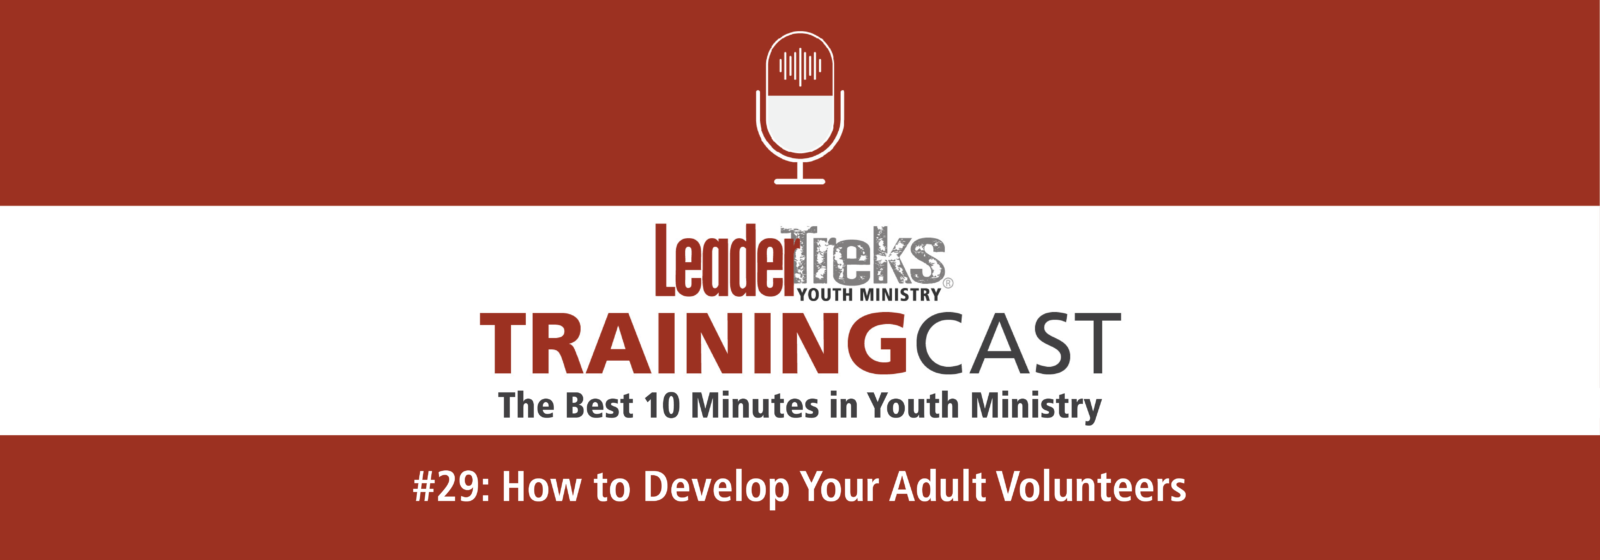 Trainingcast How to Develop Adult Volunteer